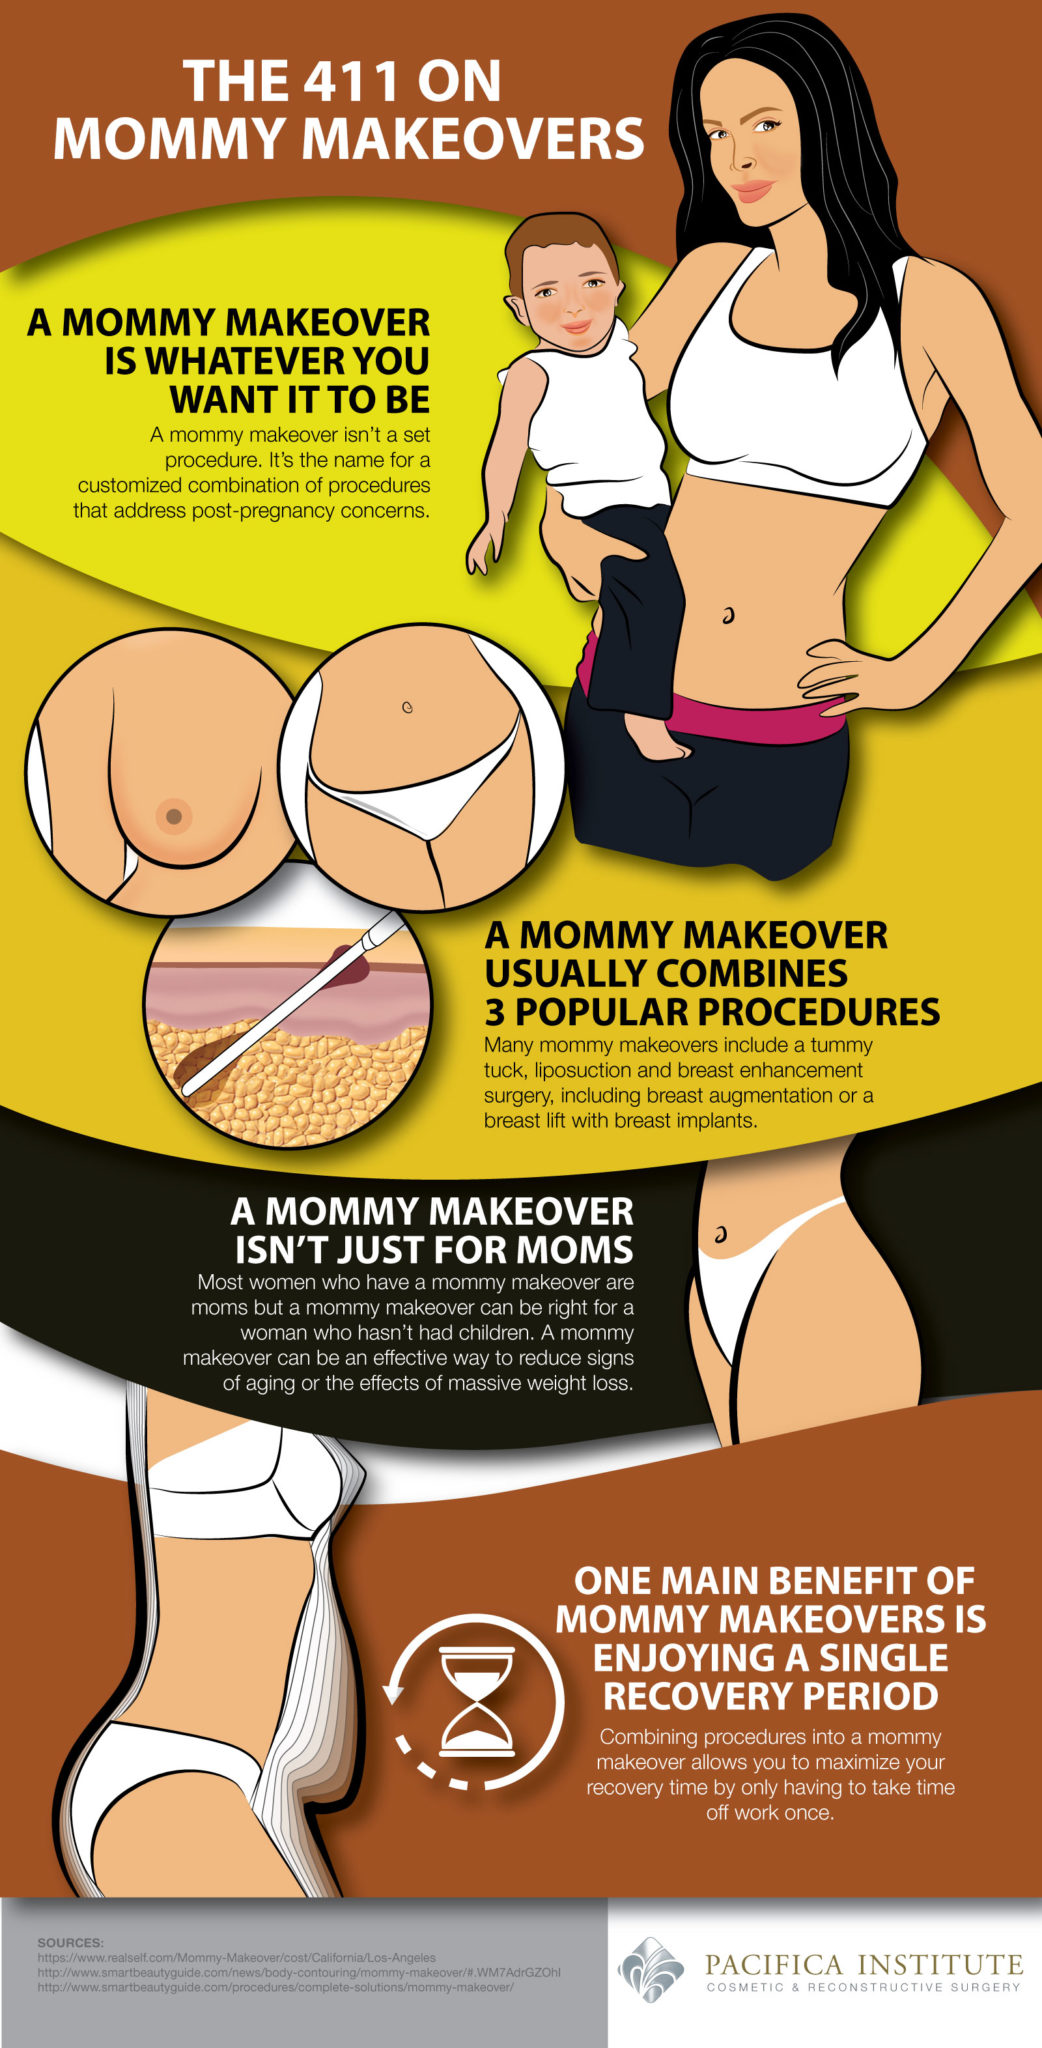 The 411 on Mommy Makeovers Infographic